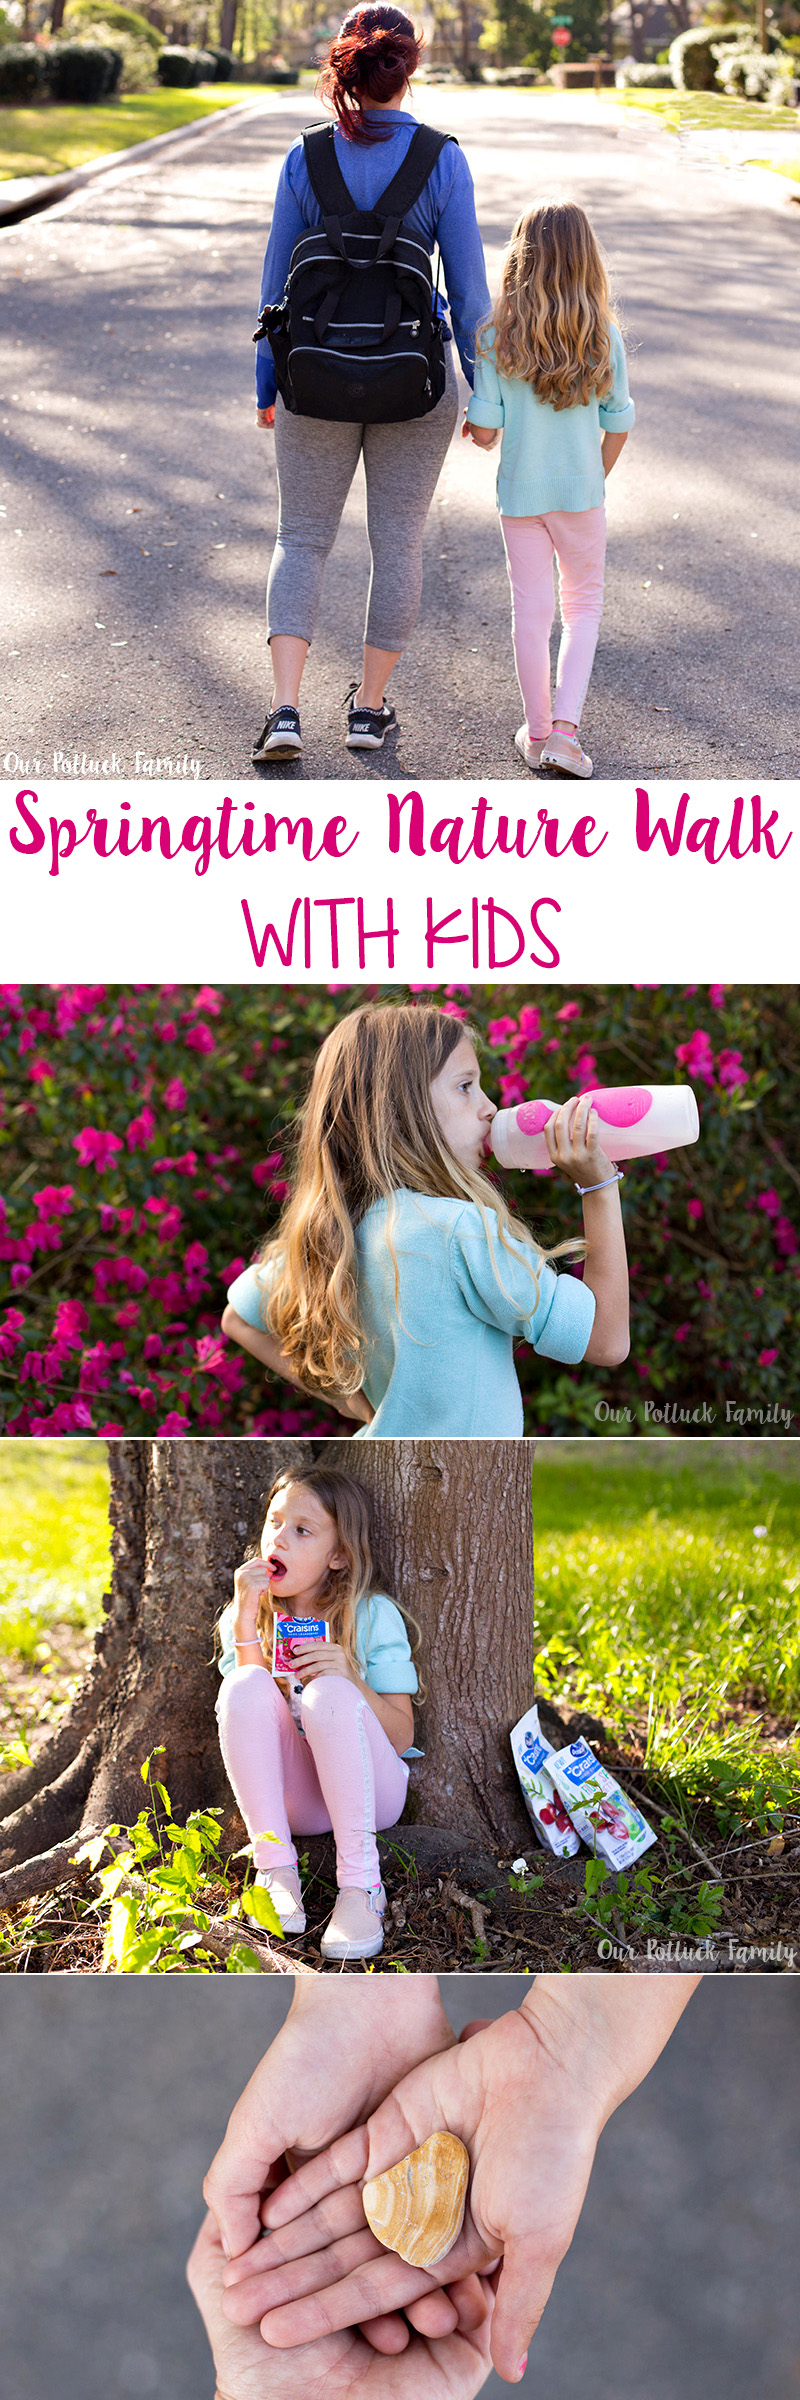 Springtime Nature Walk With Kids